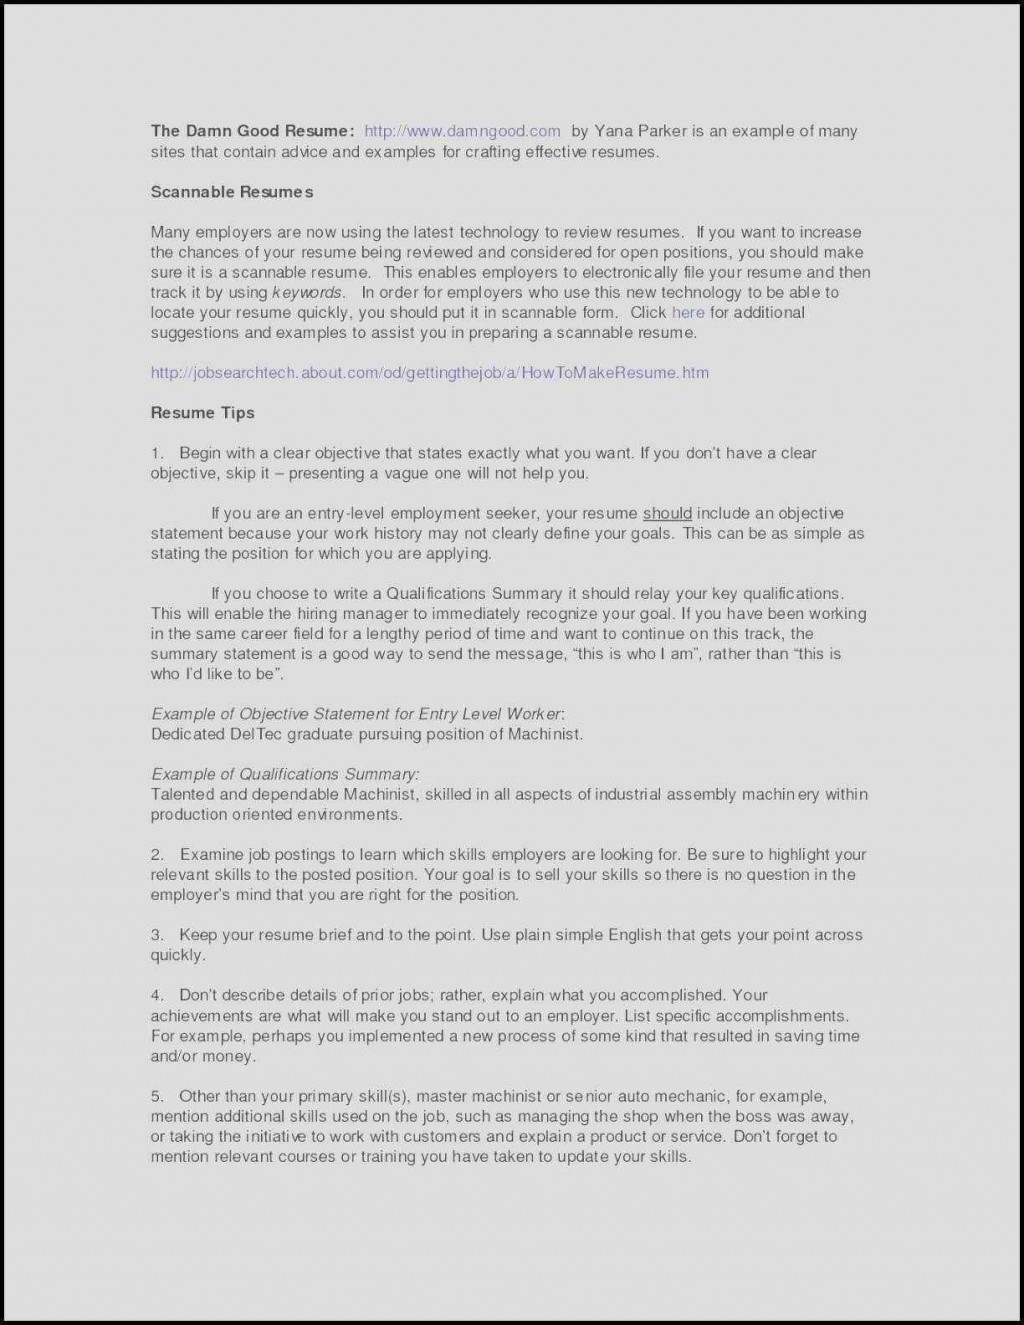 008 Resume Sample Qualification Summary Valid Ideas Great Of Research Paper Amazing Executive Apa Format Large